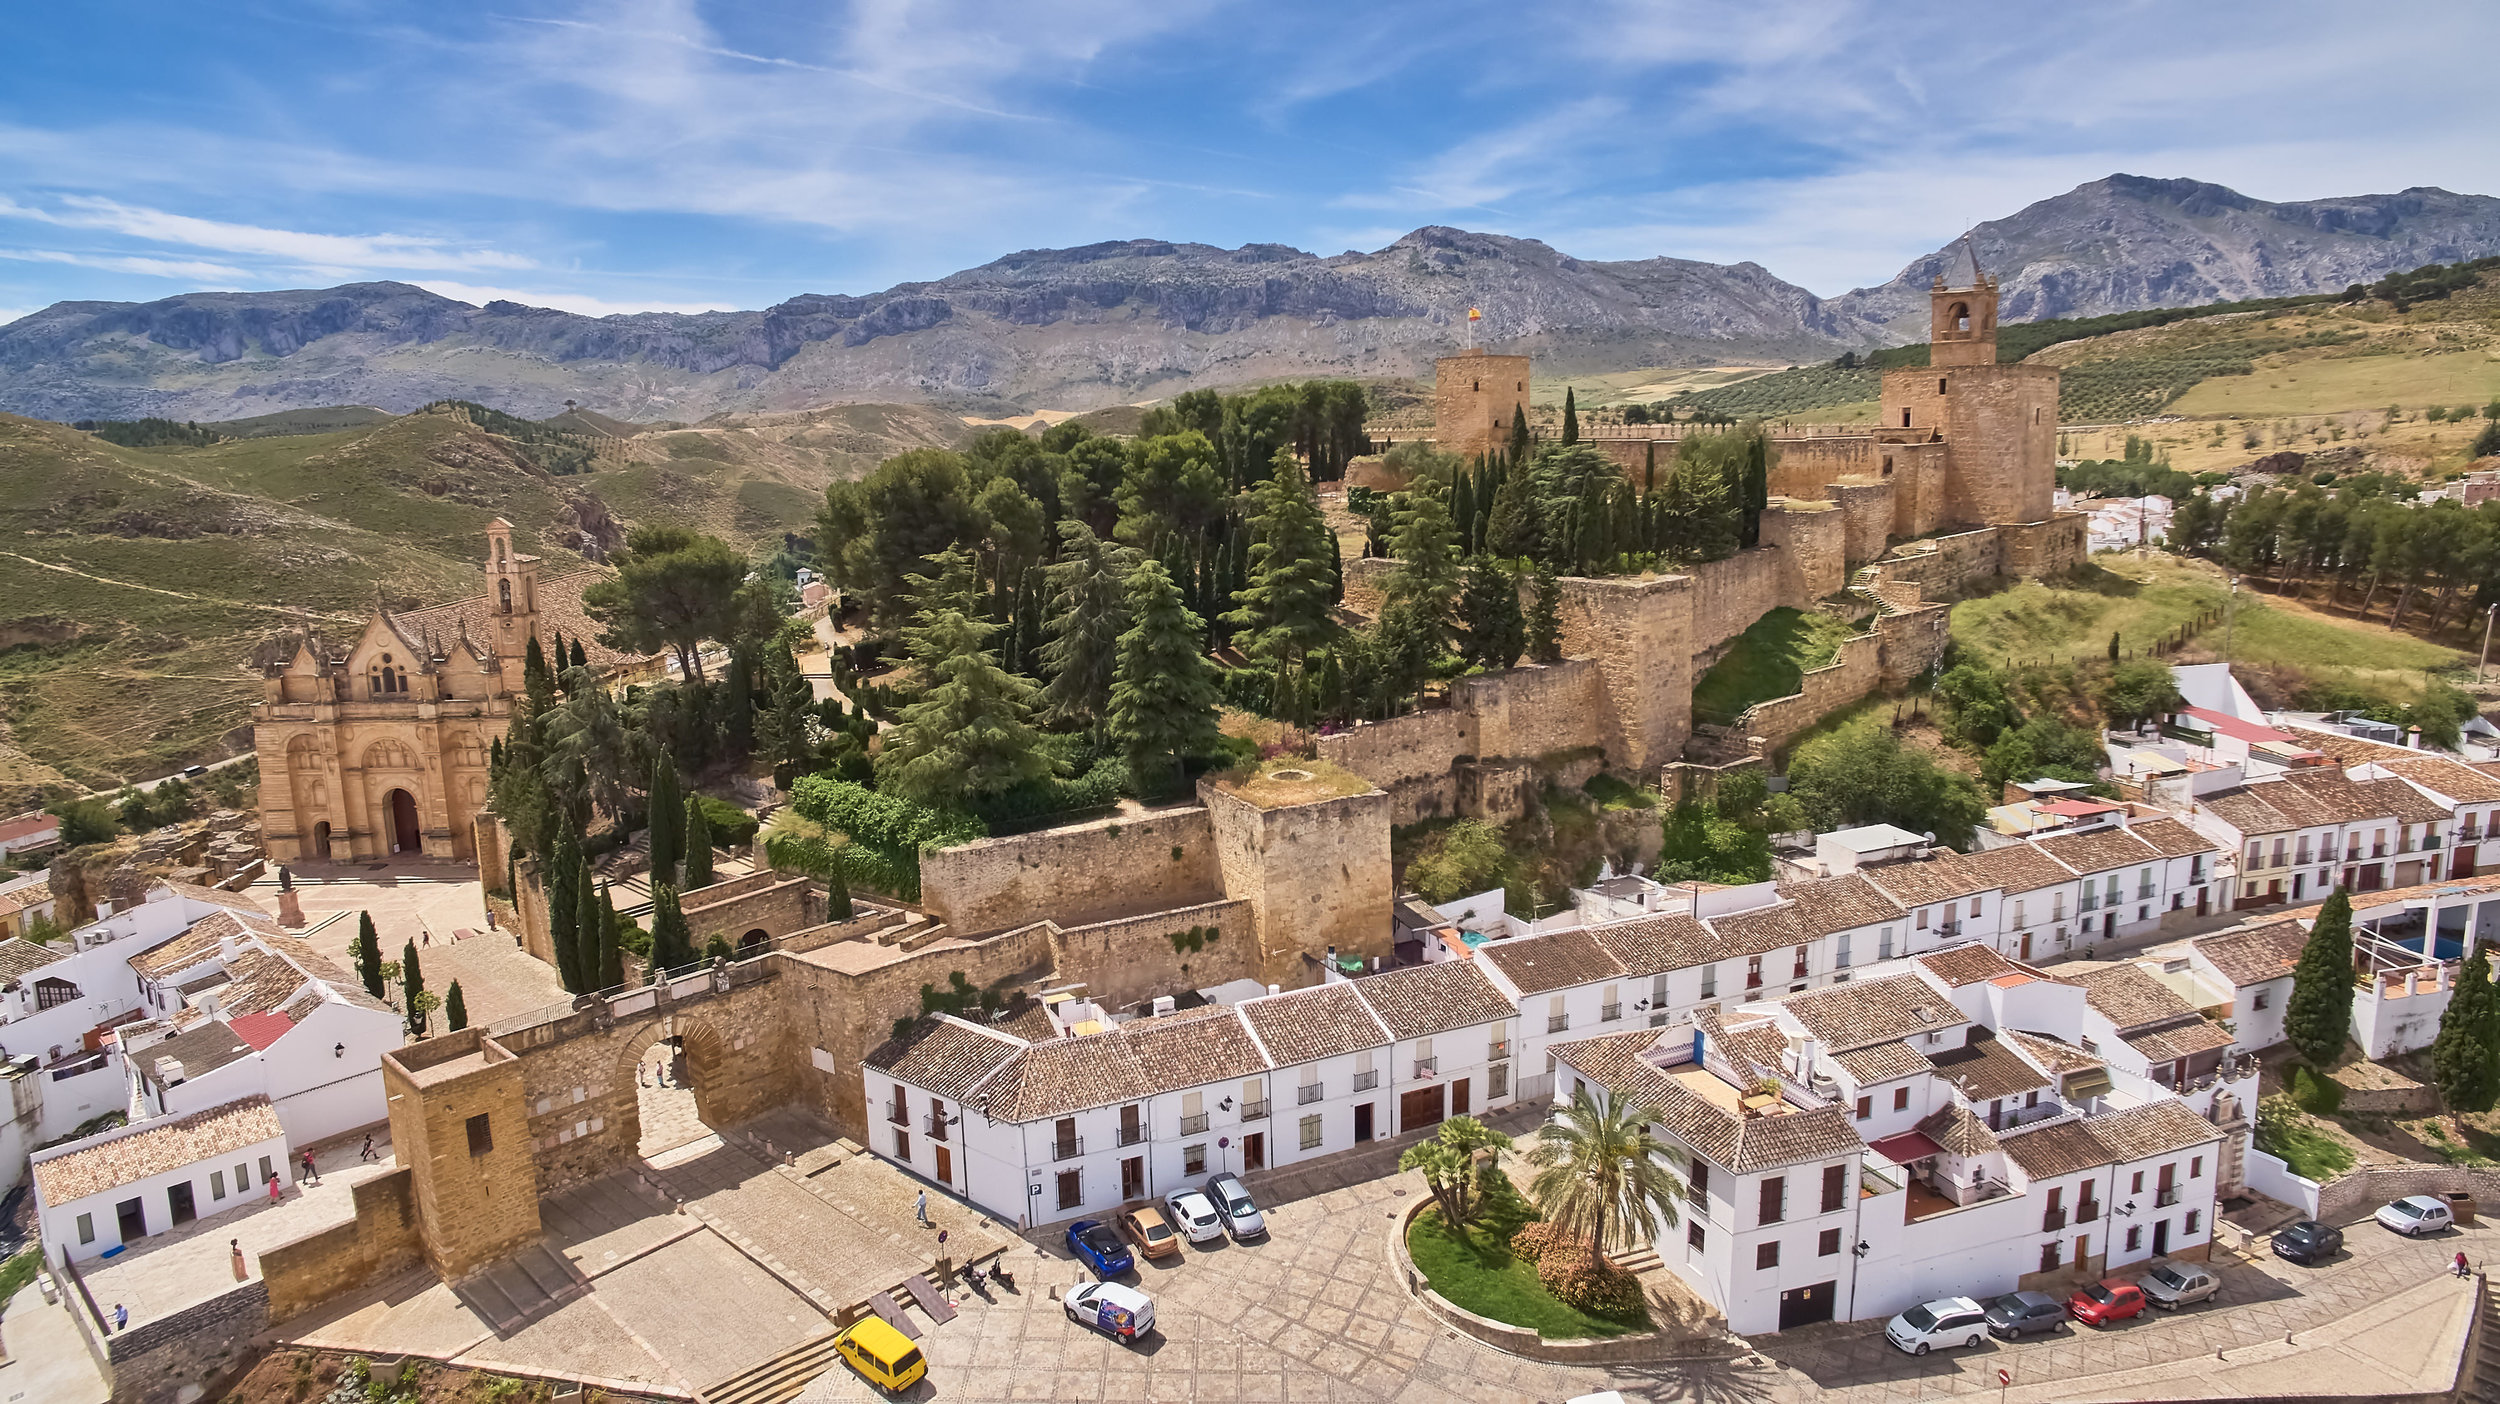 Part of Antequera's Old Town